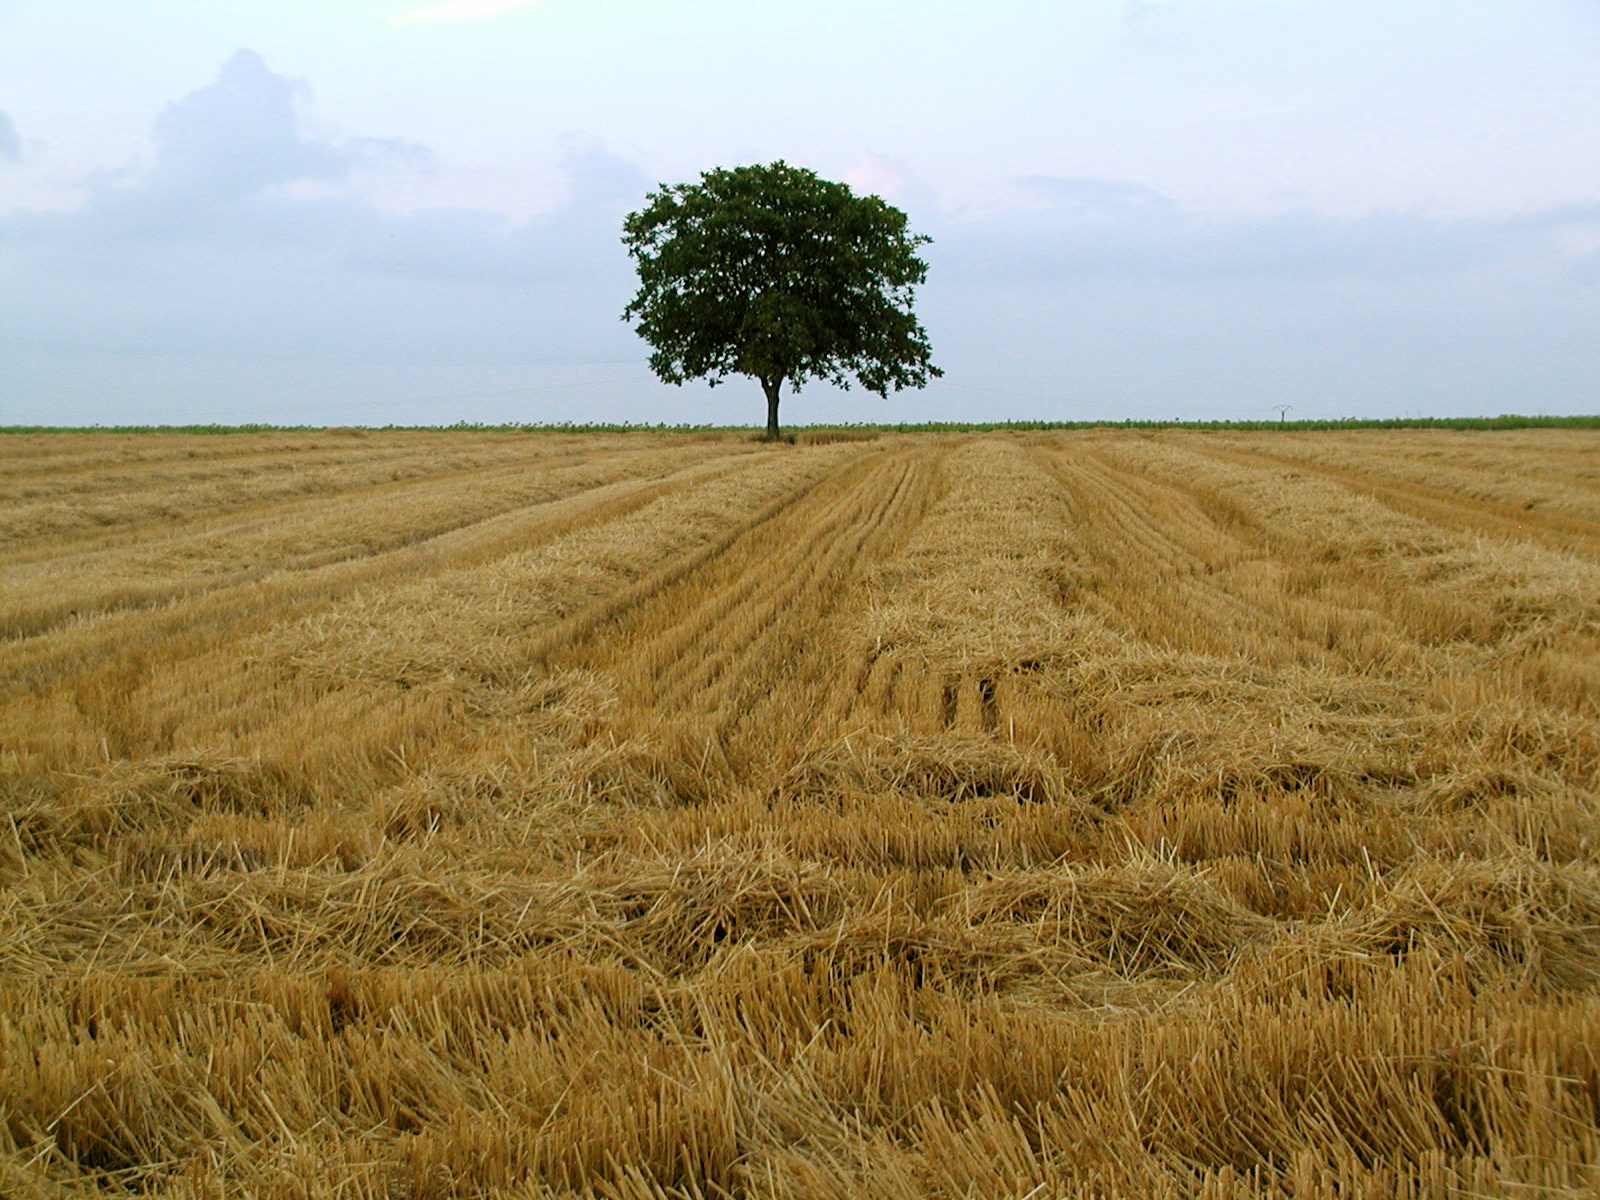 lone tree author lucke charlie at the edge of a